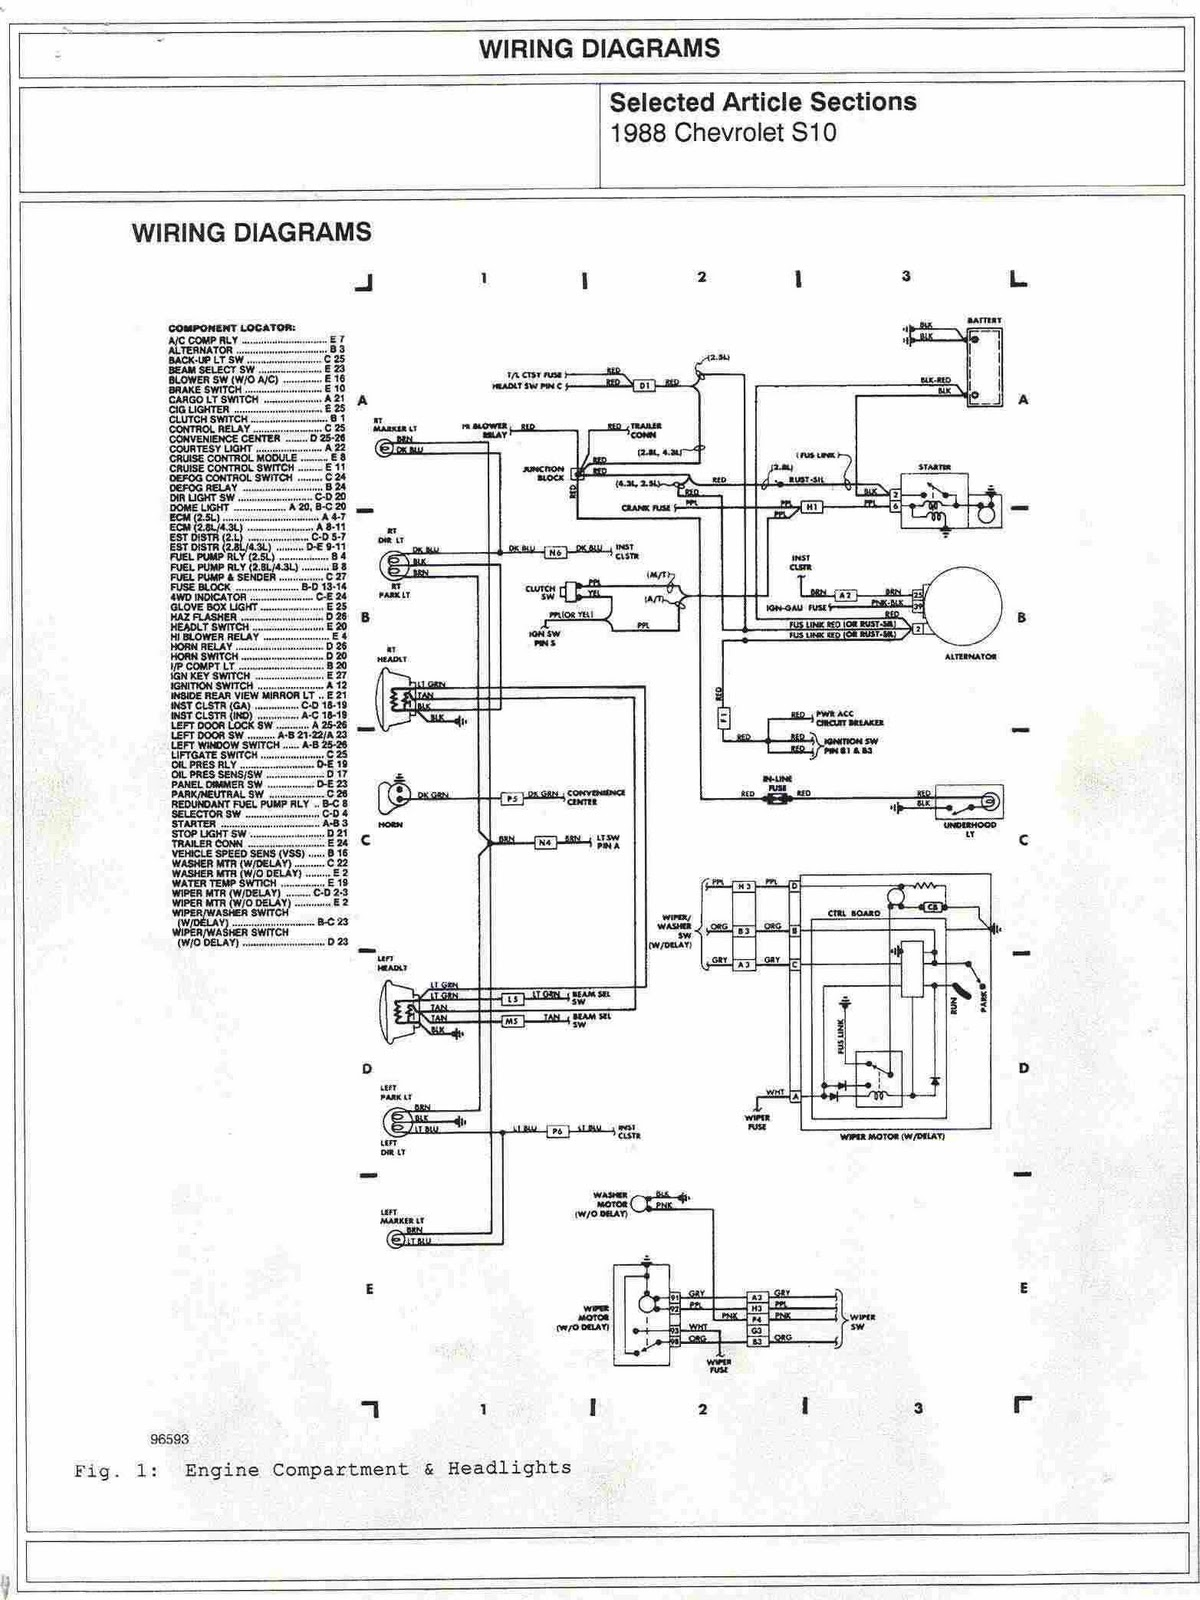 Cruise Control Diagram For Kenworth 1989 Expert Schematics Cruisecontrol Schematic Jeep 1993 Chevy Wiring Diagrams Boat Awesome Ford Truck